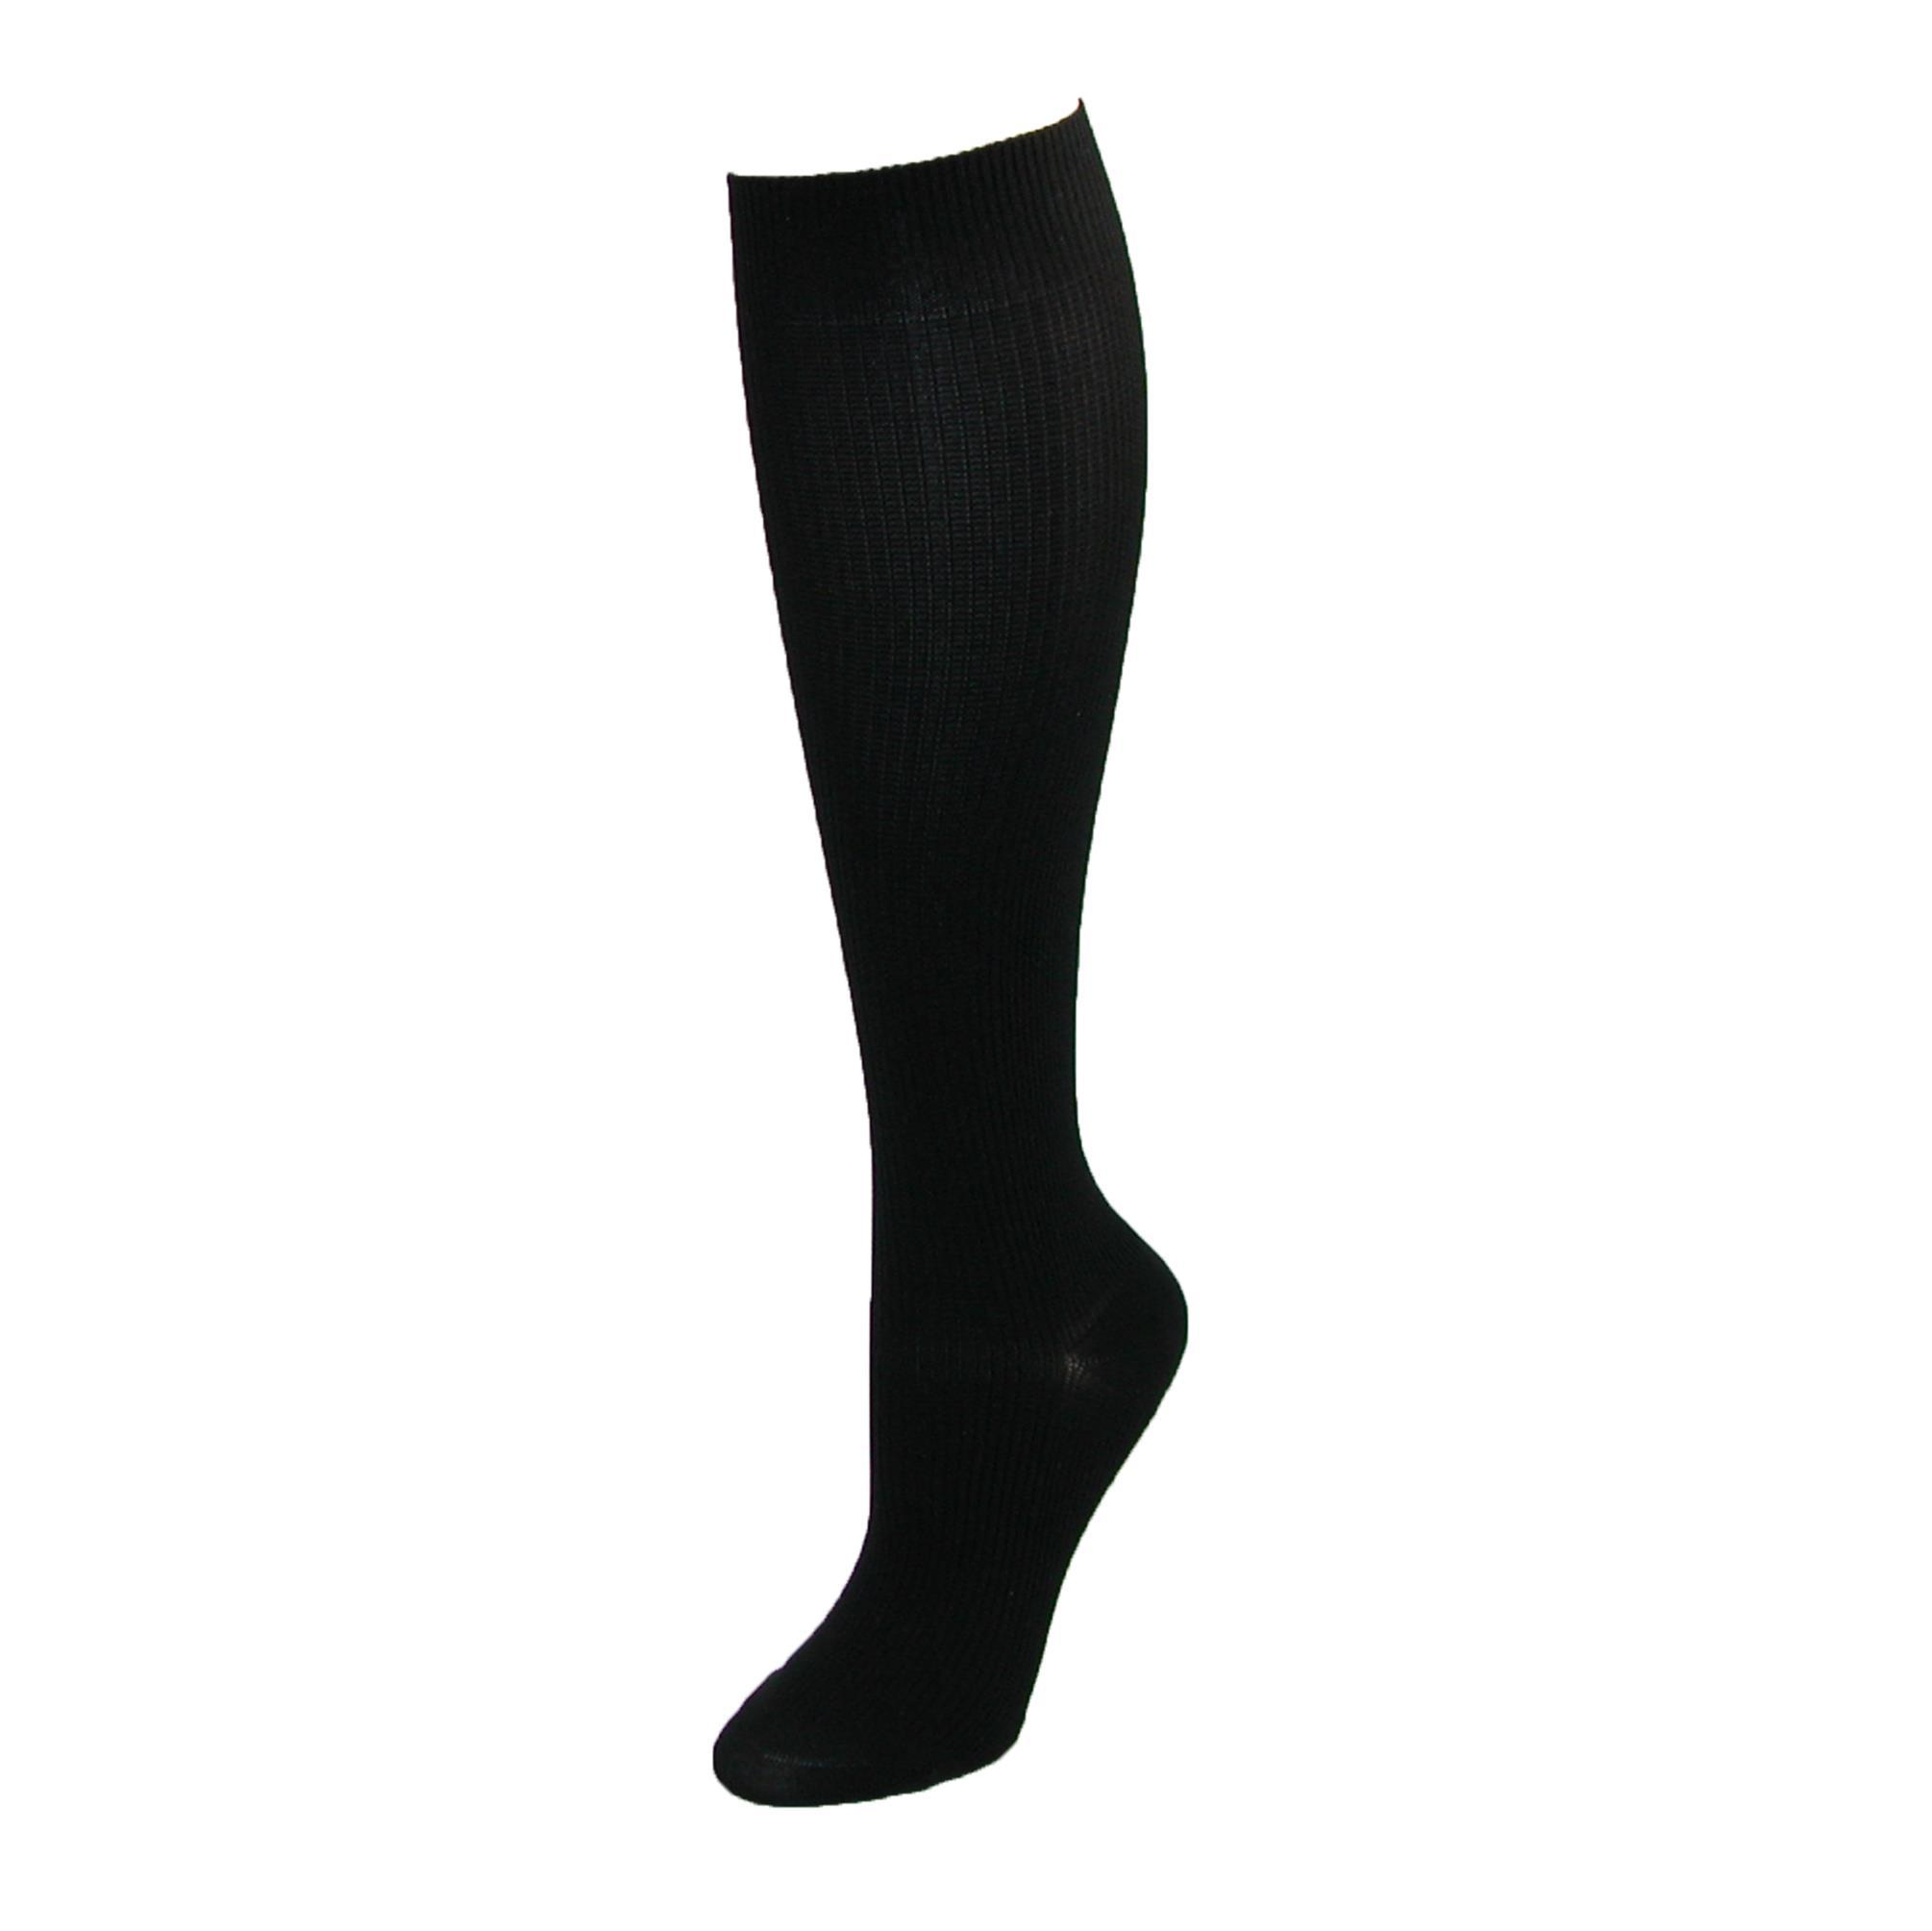 Think Medical Womens Plus Size Compression Knee High Socks (3 Pair Pack)